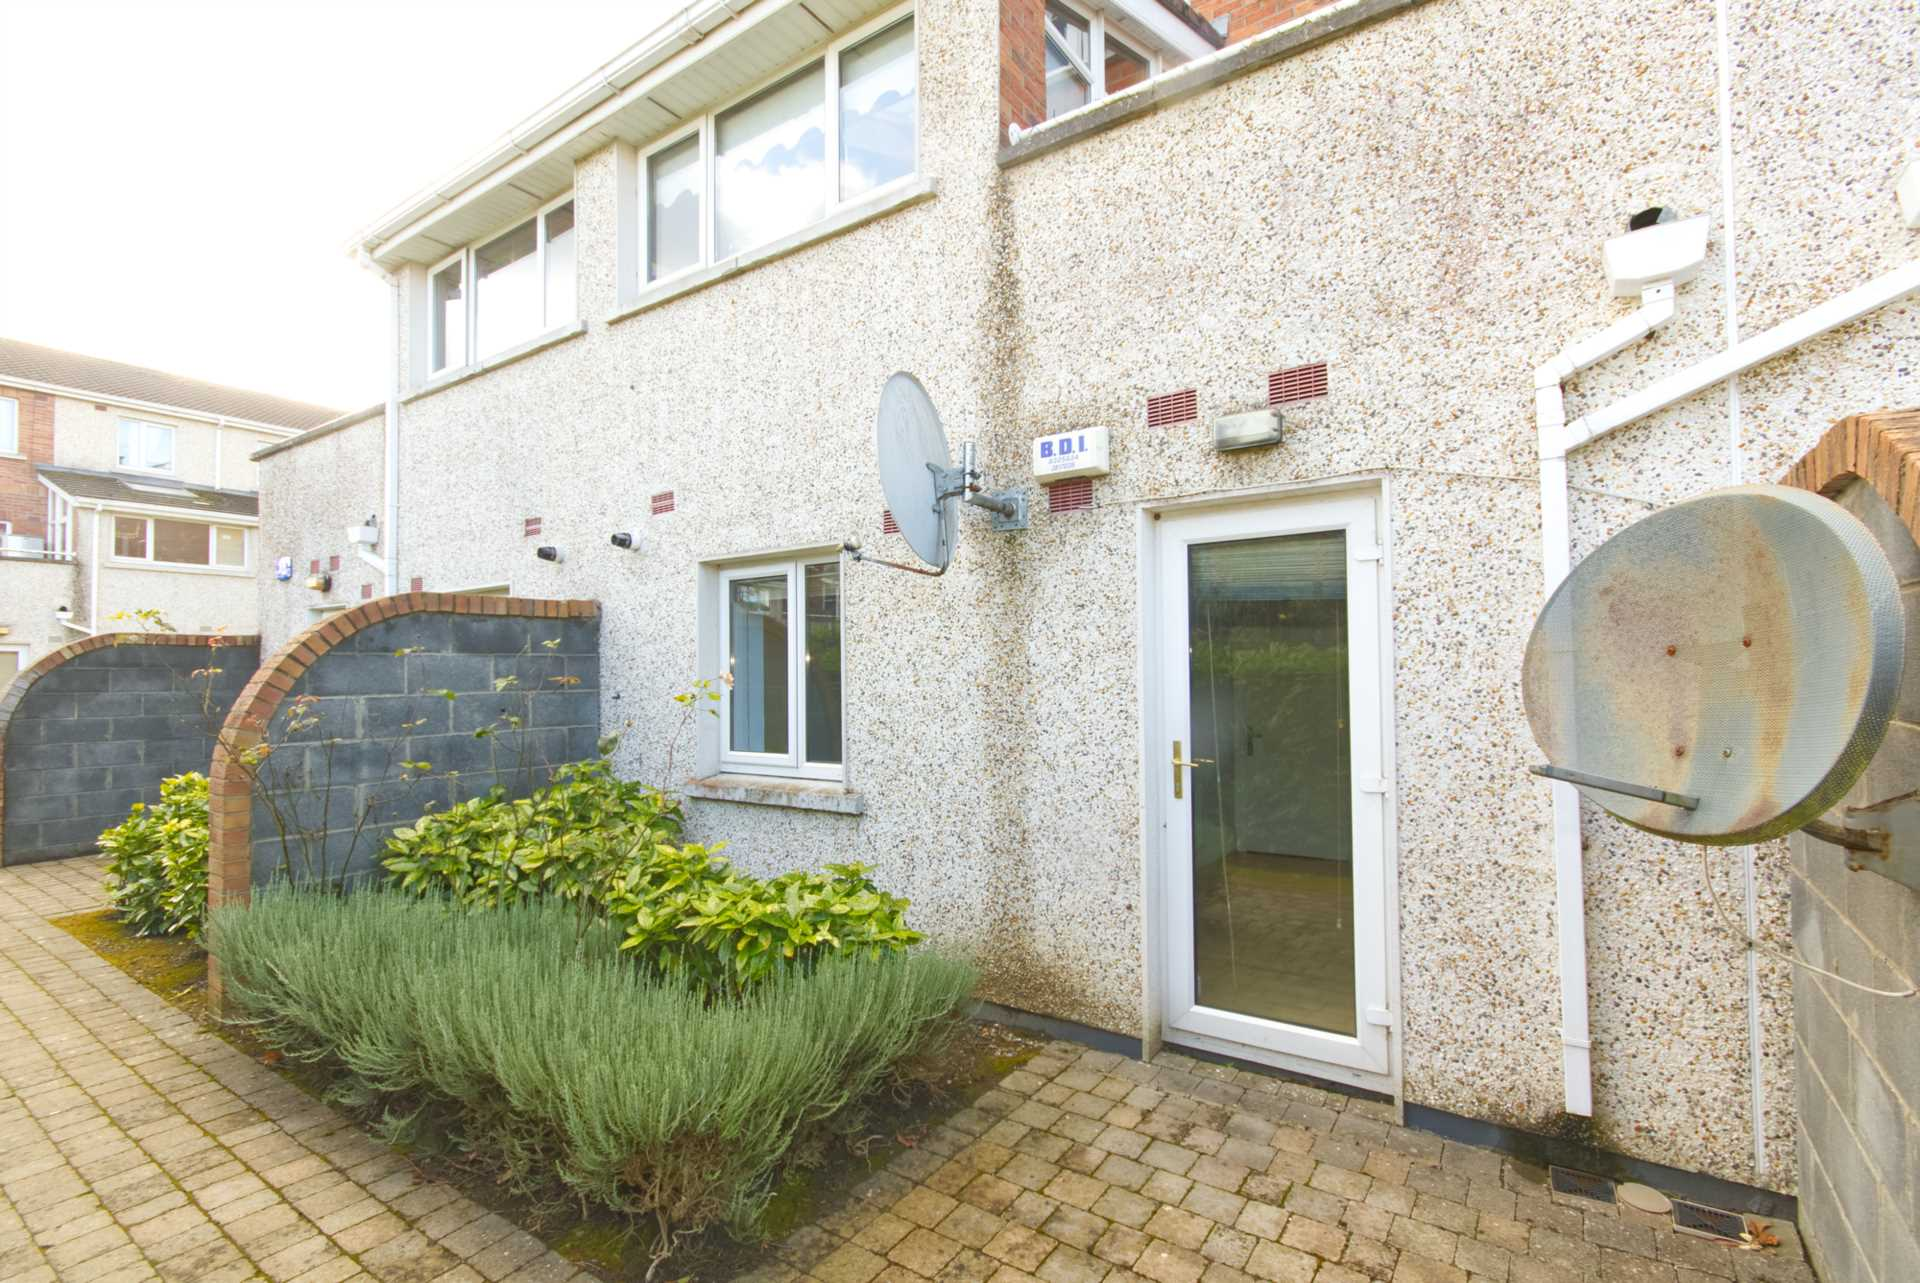 19 Carrigmore Court, Citywest, Dublin 24, Image 8